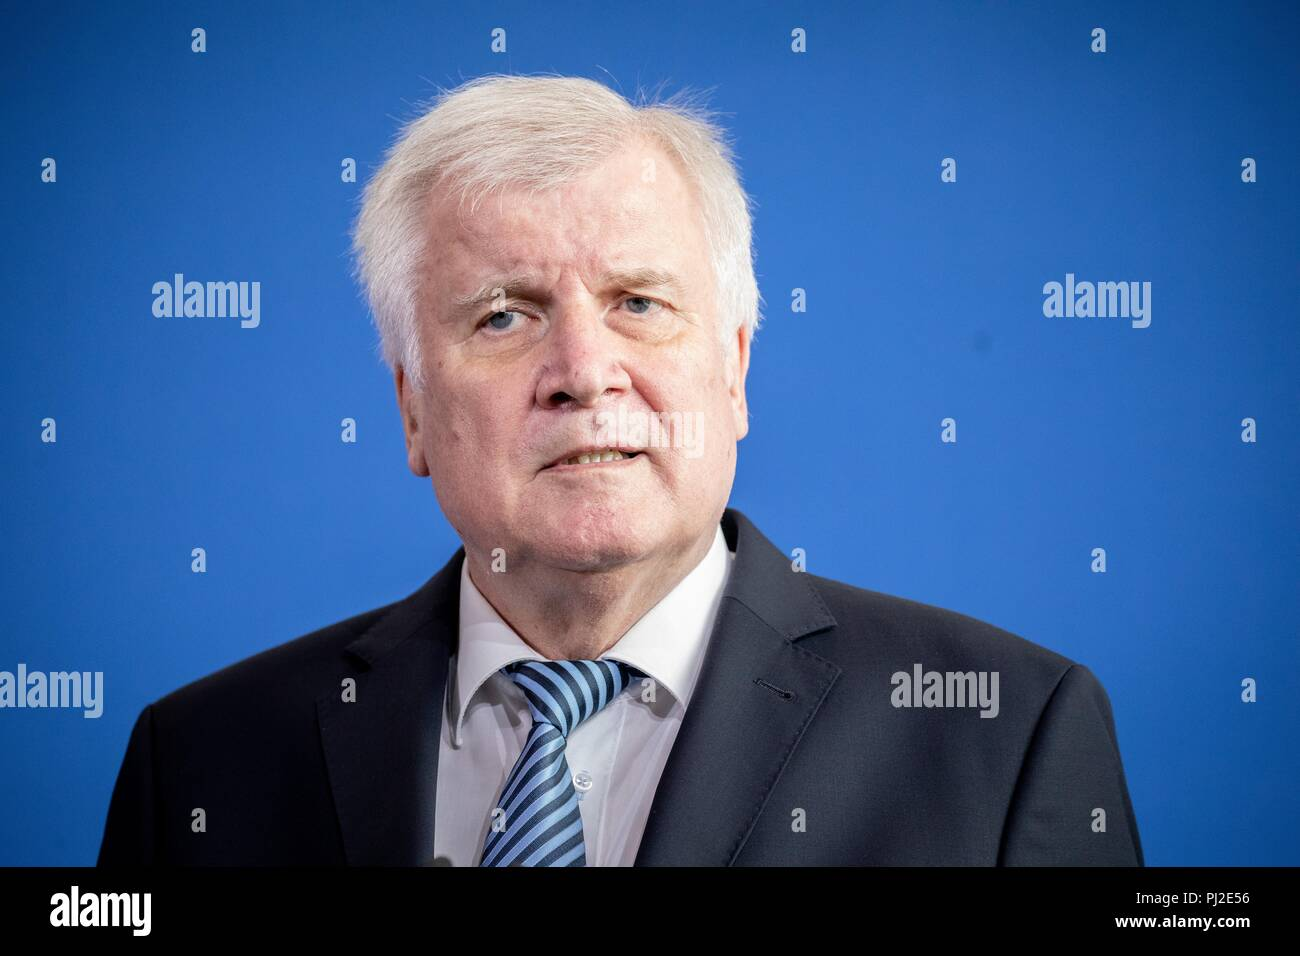 Berlin, Germany. 04th Sep, 2018. 04.09.2018, Berlin: Horst Seehofer (CSU), Federal Minister of the Interior, Building and Community, gives a press conference with his Austrian counterpart Kickl after a discussion on current political issues. Credit: Kay Nietfeld/dpa/Alamy Live News - Stock Image